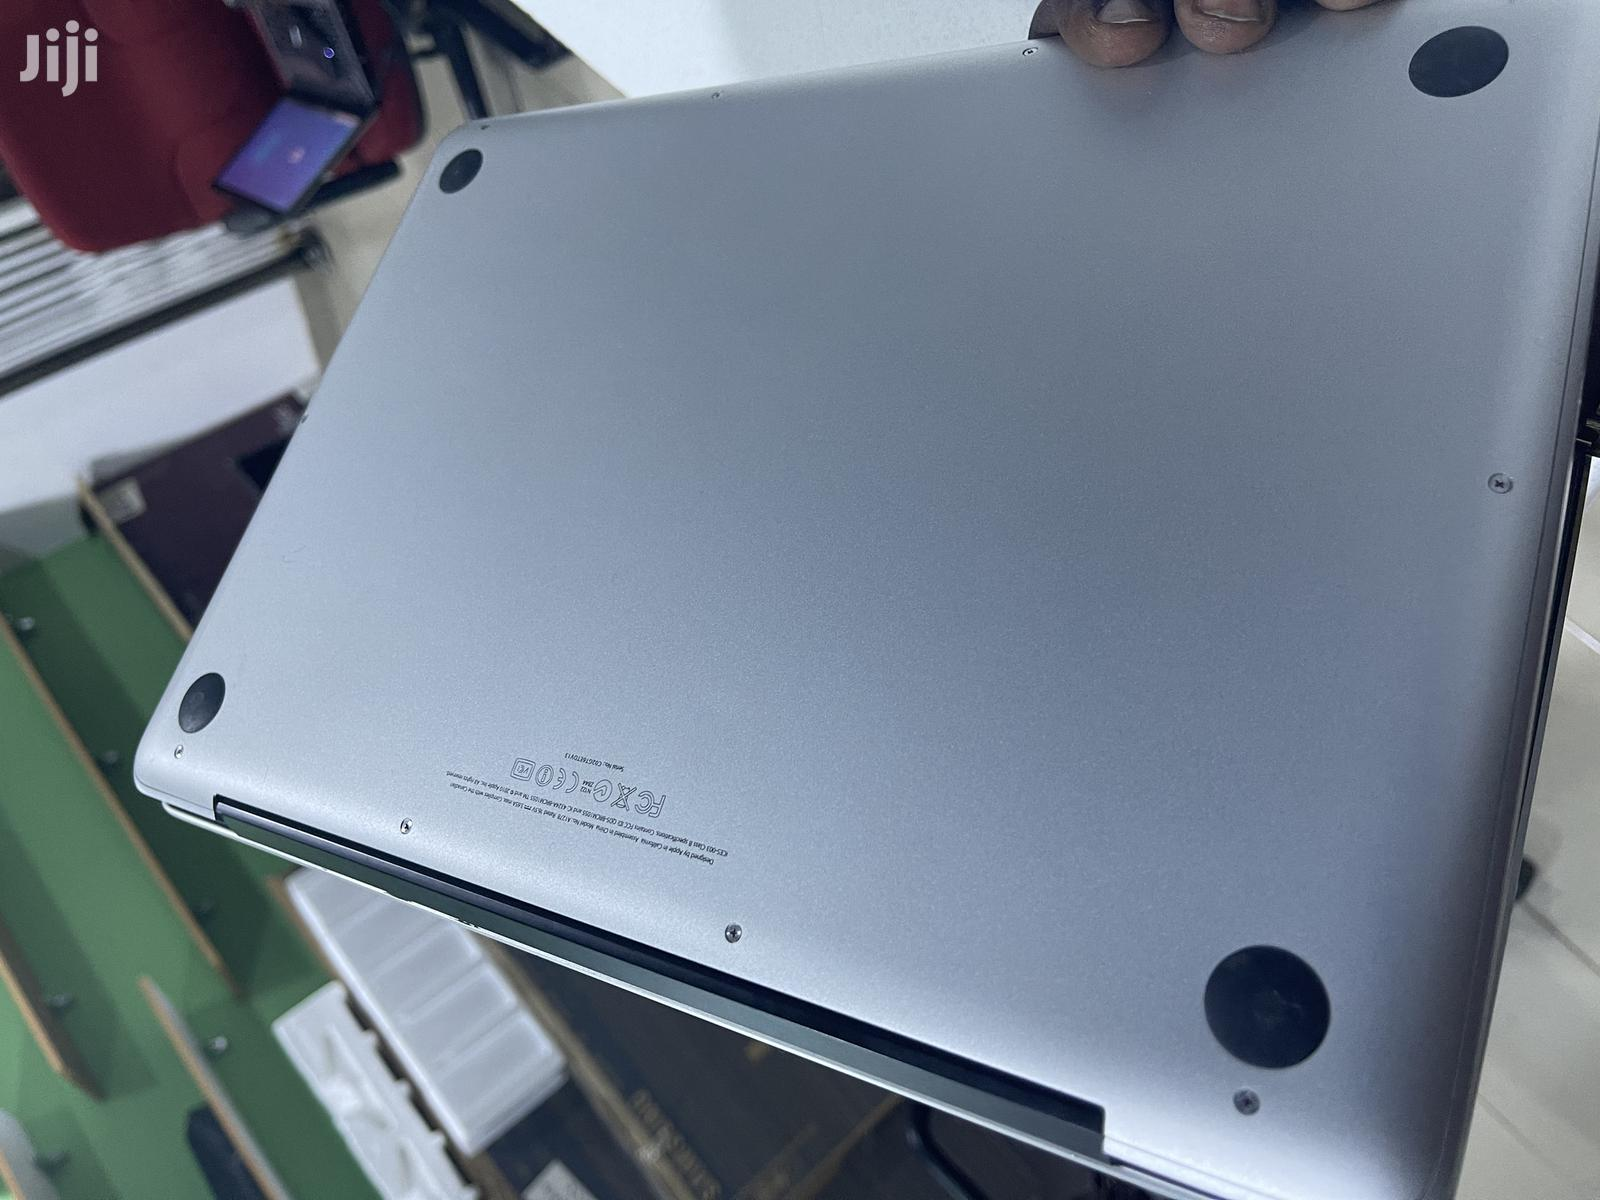 Laptop Apple MacBook Pro 8GB Intel Core I5 HDD 160GB   Laptops & Computers for sale in Achimota, Greater Accra, Ghana